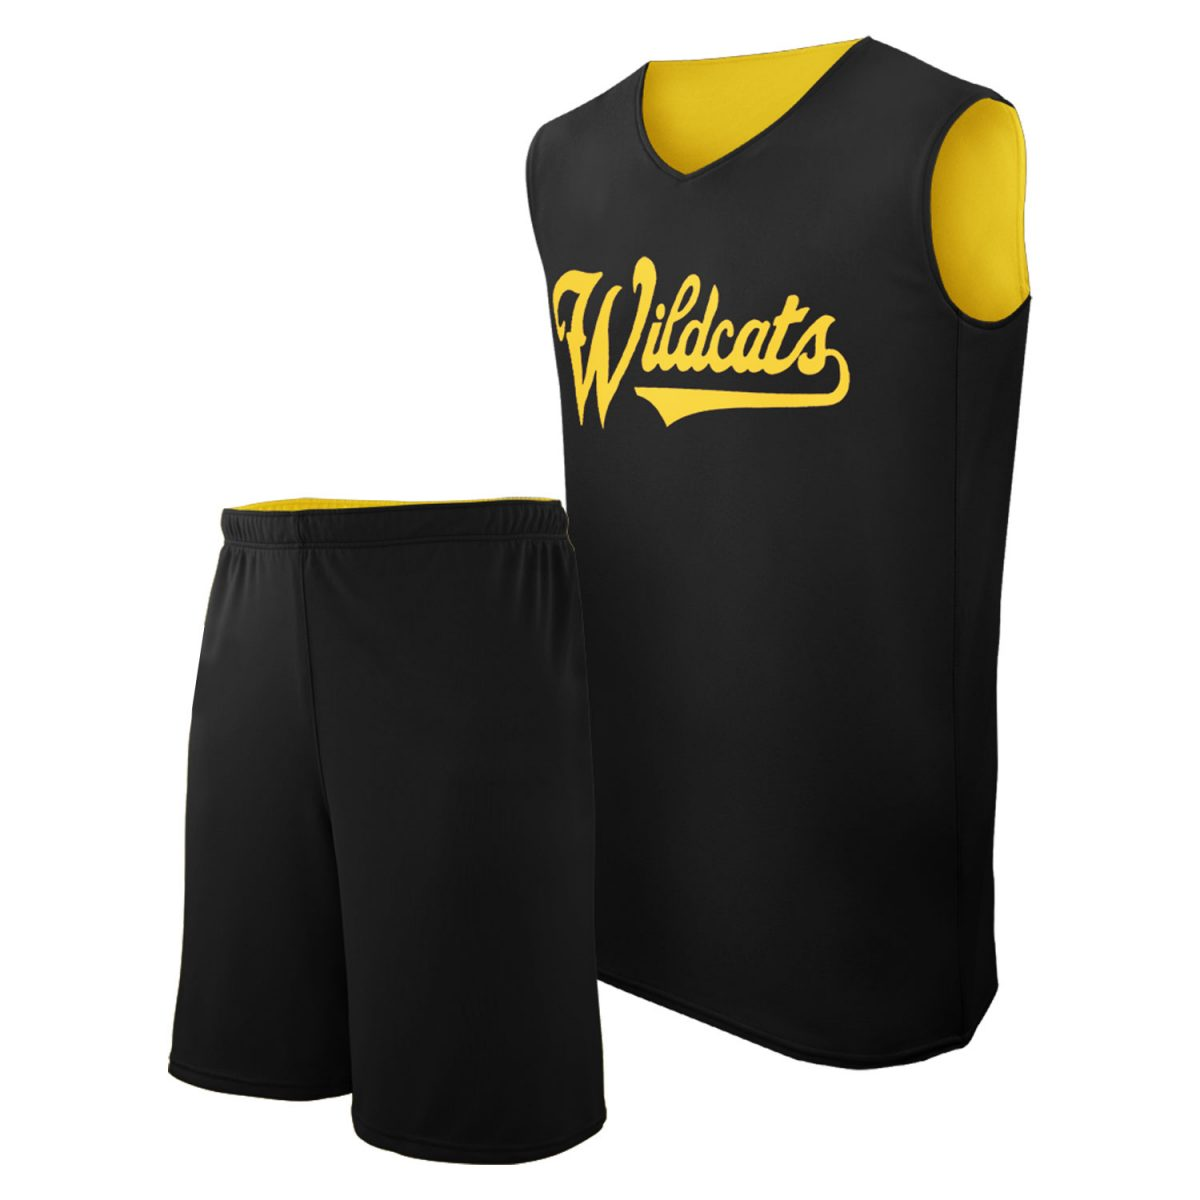 Boys Basketball Uniforms Manufacturers in Tiruchirappalli